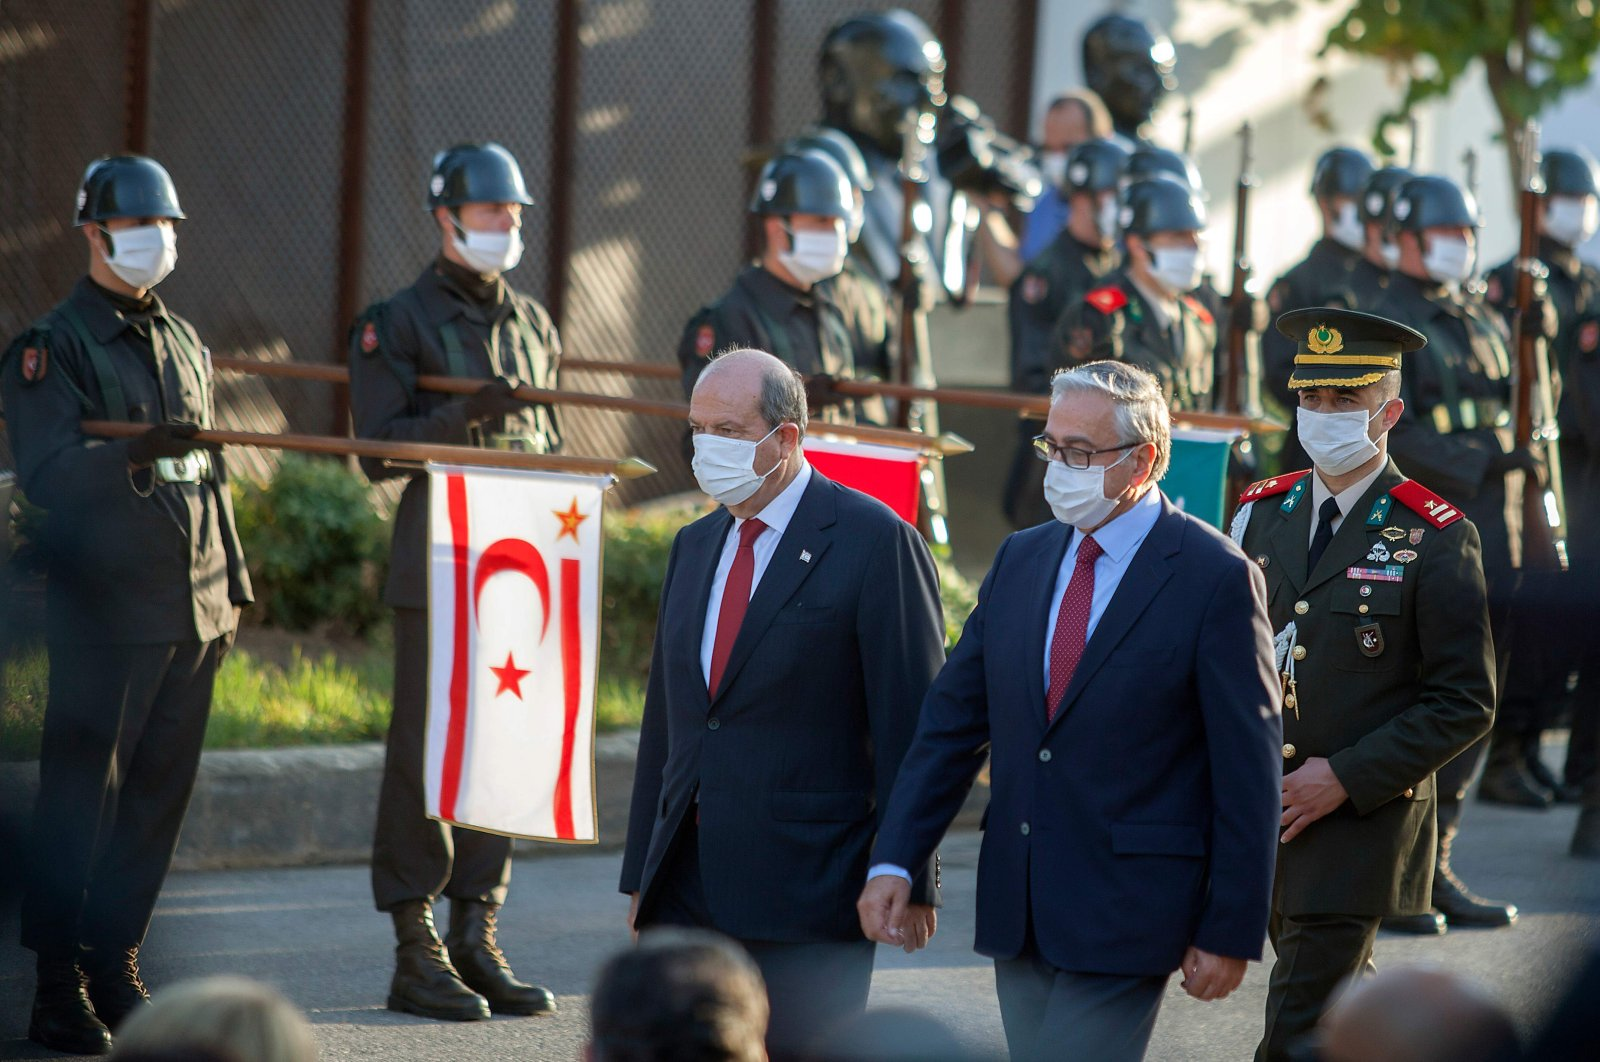 Former Turkish-Cypriot leader Mustafa Akıncı (R) and newly elected President Ersin Tatar, arrive at a handover ceremony in the northern part of Nicosia, the capital of the Turkish Republic of Northern Cyprus (TRNC), Oct. 23, 2020. (AFP Photo)